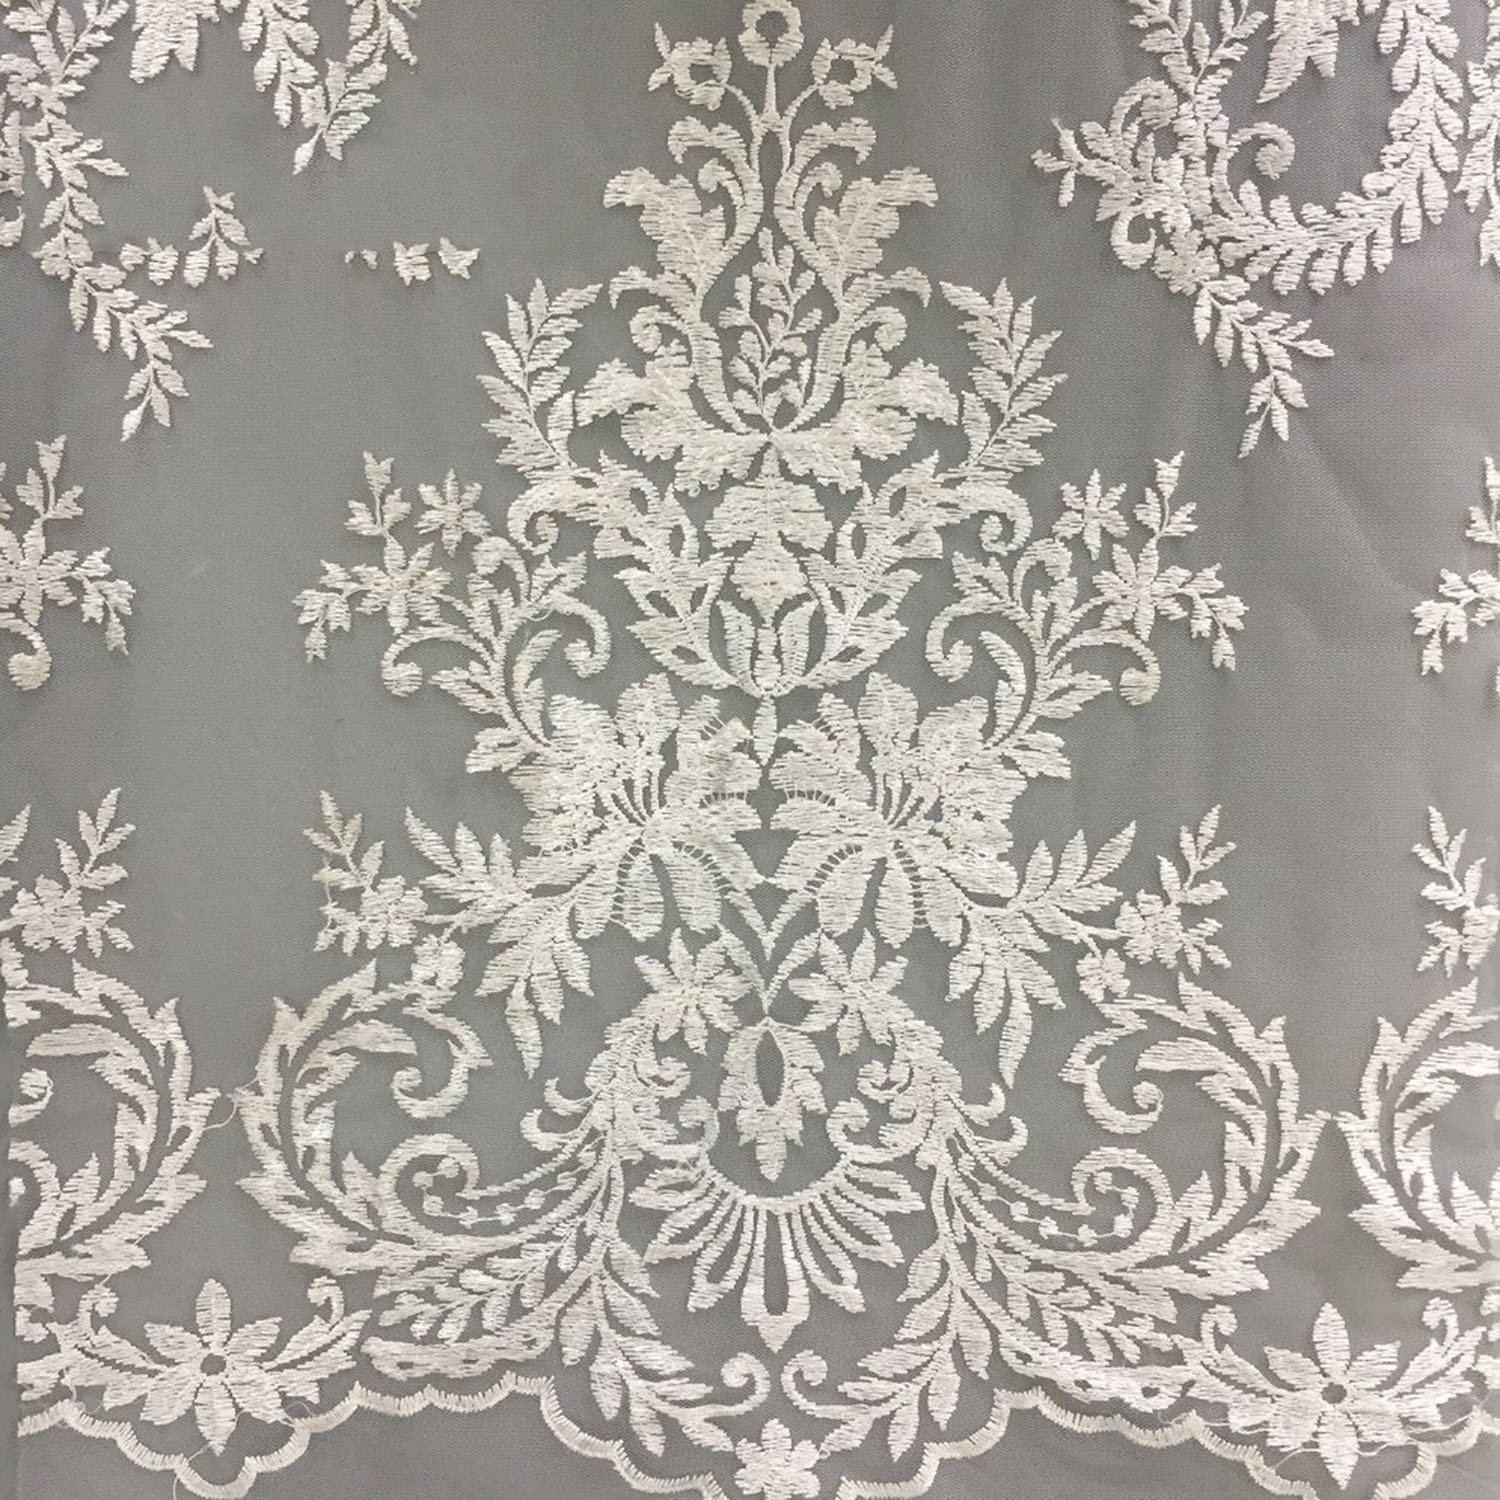 China Hot Products Custom Design Hot Sale Embroidered Lace Fabric China Embroidered Lace Fabric And Lace Fabric New Sample Price